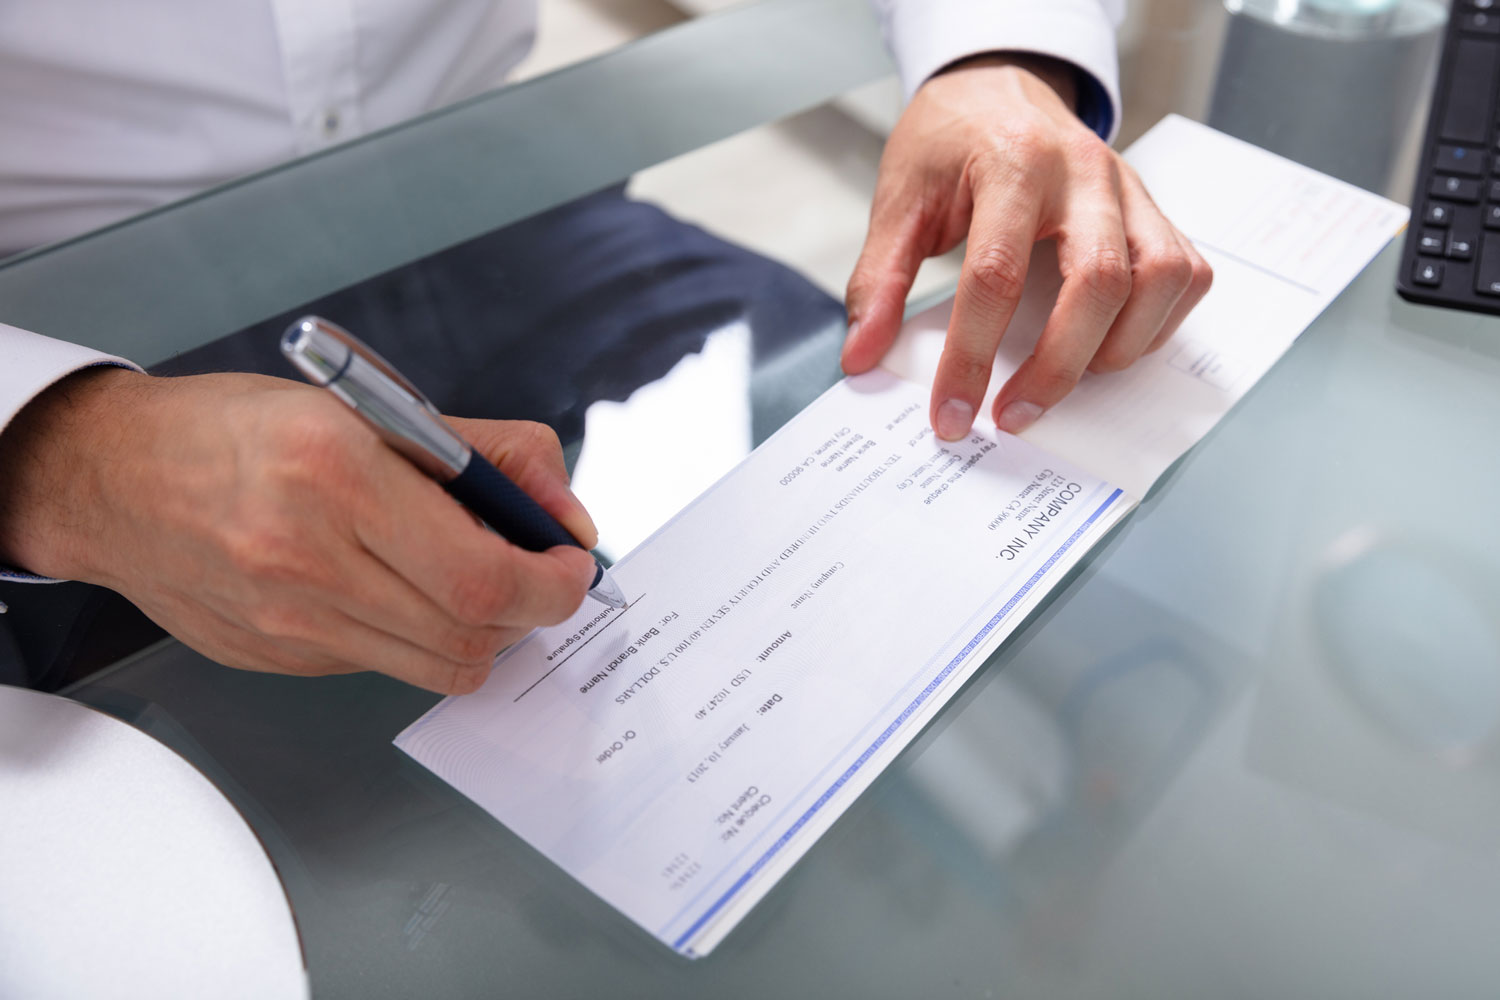 Can You Deposit A Check Without A Signature?